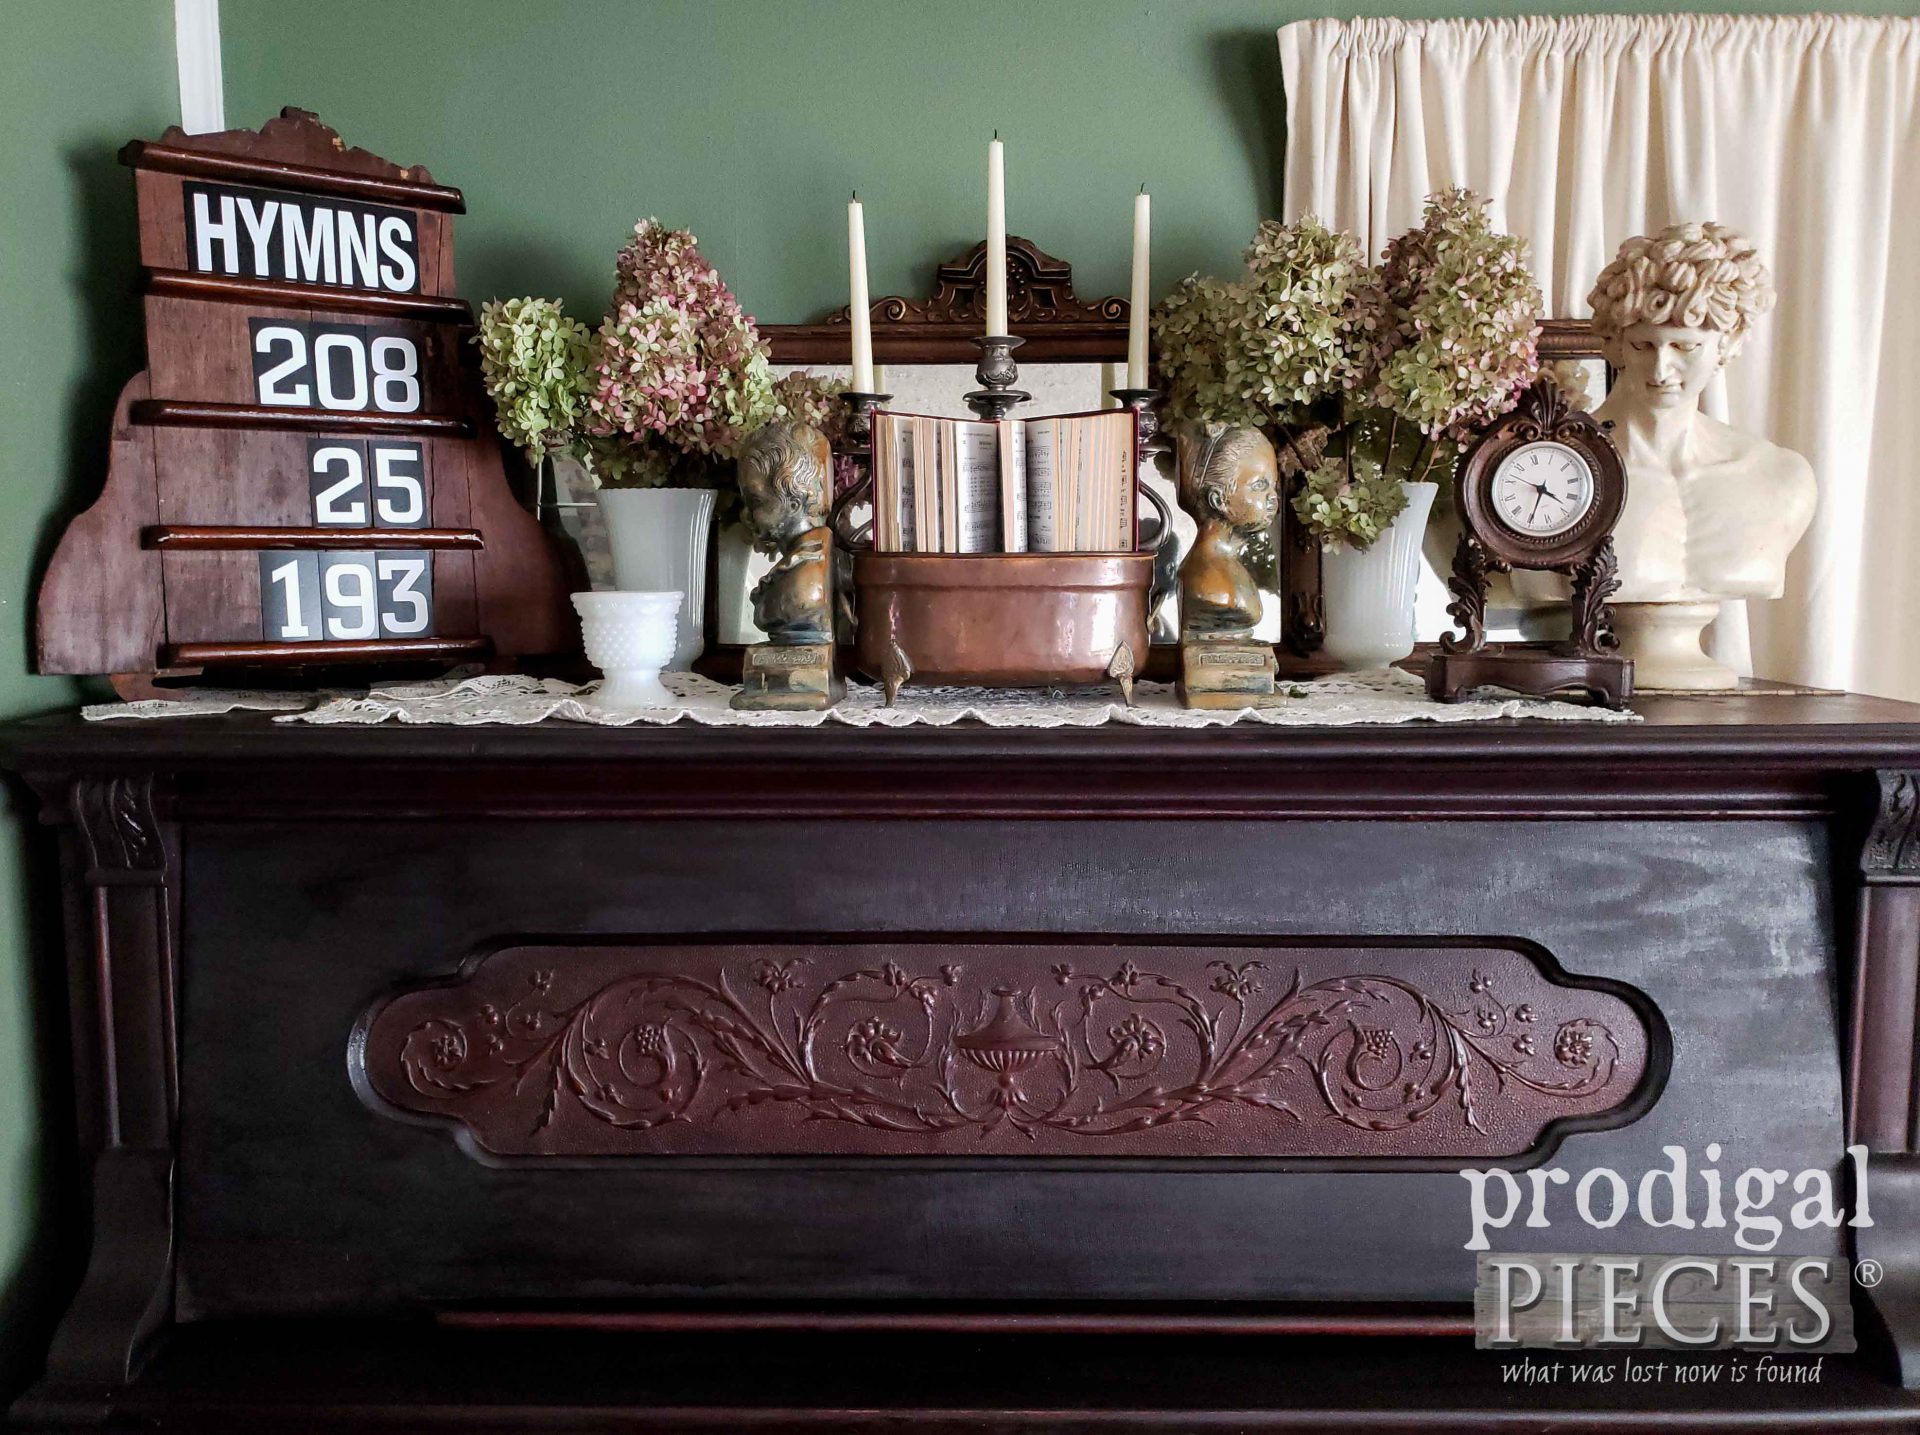 Antique Piano with Upcycled Hymn Board created by Larissa of Prodigal Pieces | prodigalpieces.com #prodigalpieces #home #handmade #antique #homedecor